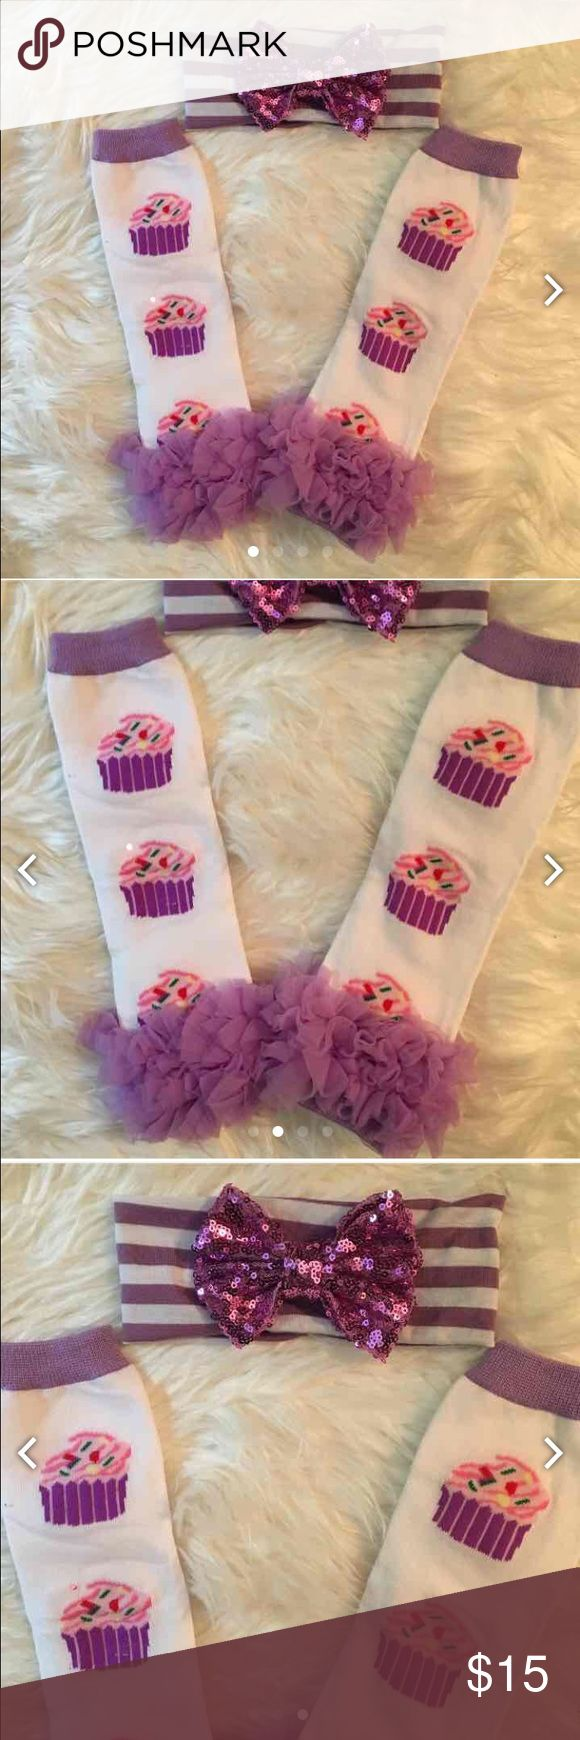 Cupcake cutie leg warmers and headband set Get these Delicious Cupcake leg warmers with purple and white striped headband and bright metallic purple bow. Perfect gift for your little one, a present for your niece, baby shower gift or expectant mother. Makes great coworker gifts, stocking stuffers and birthday celebrations! Set includes leg warmers and headbands. Price firm due to posh fee Accessories Socks & Tights